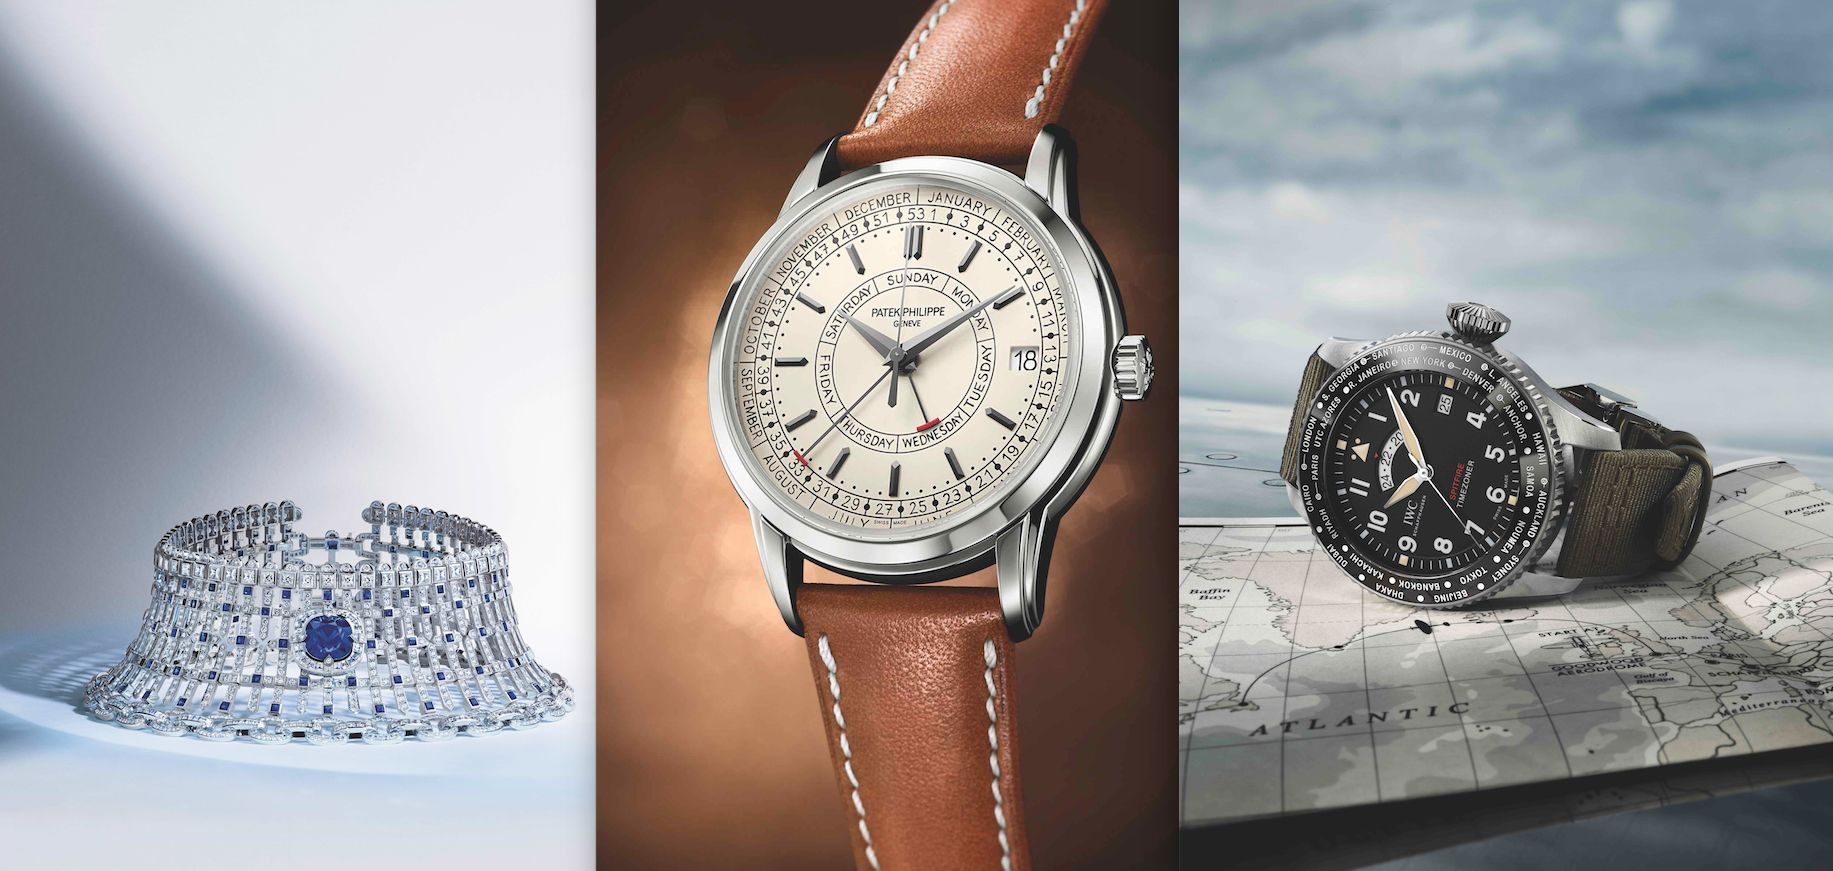 The Latest Watch And Jewellery Releases To Look Out For During Ion Orchard's 10th Anniversary: Louis Vuitton, Patek Philippe And IWC Schaffhausen